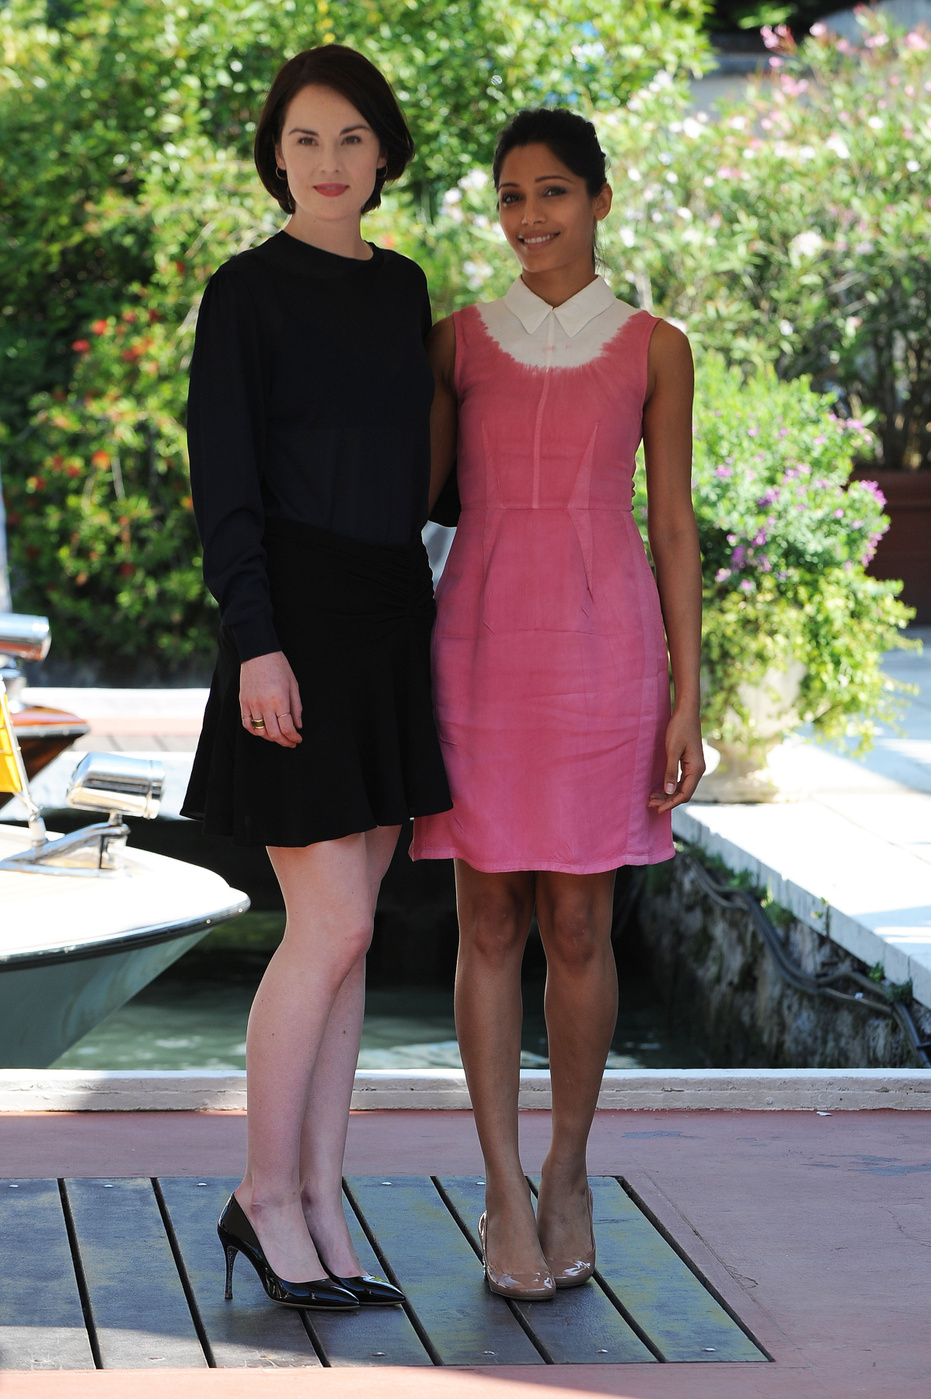 Venice Film Festival Fug or Fab: Michelle Dockery and Freida Pinto